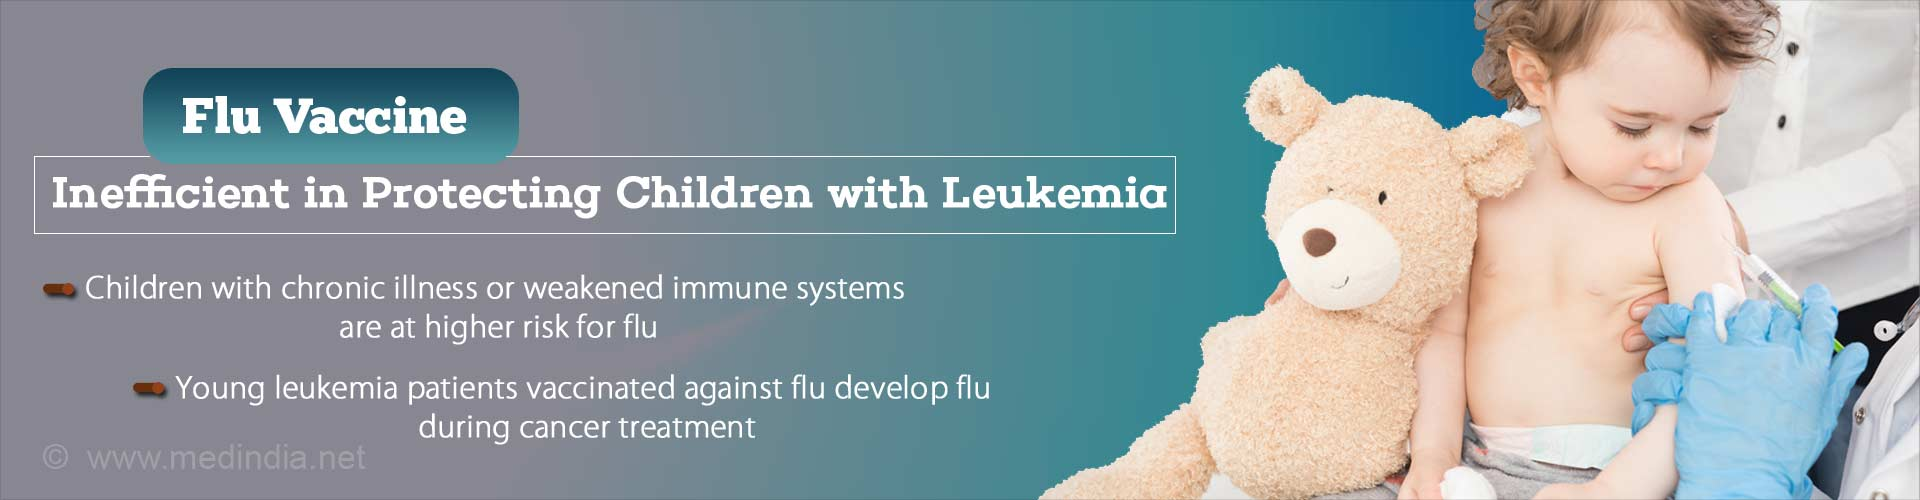 Flu vaccine inefficient in protecting children with leukemia